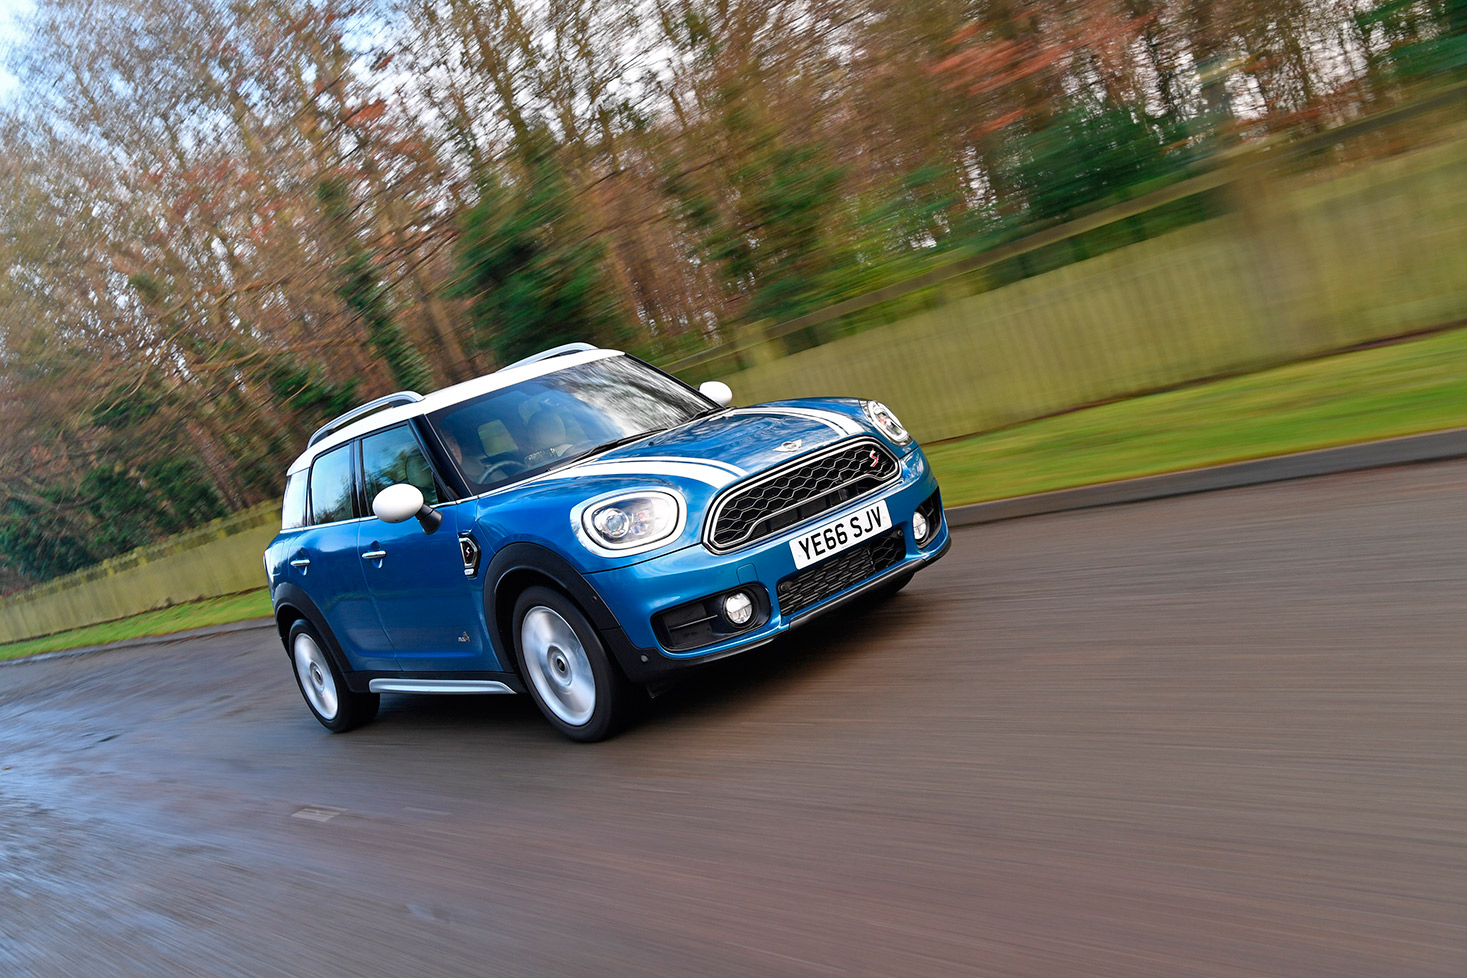 mini-countryman-186.jpg